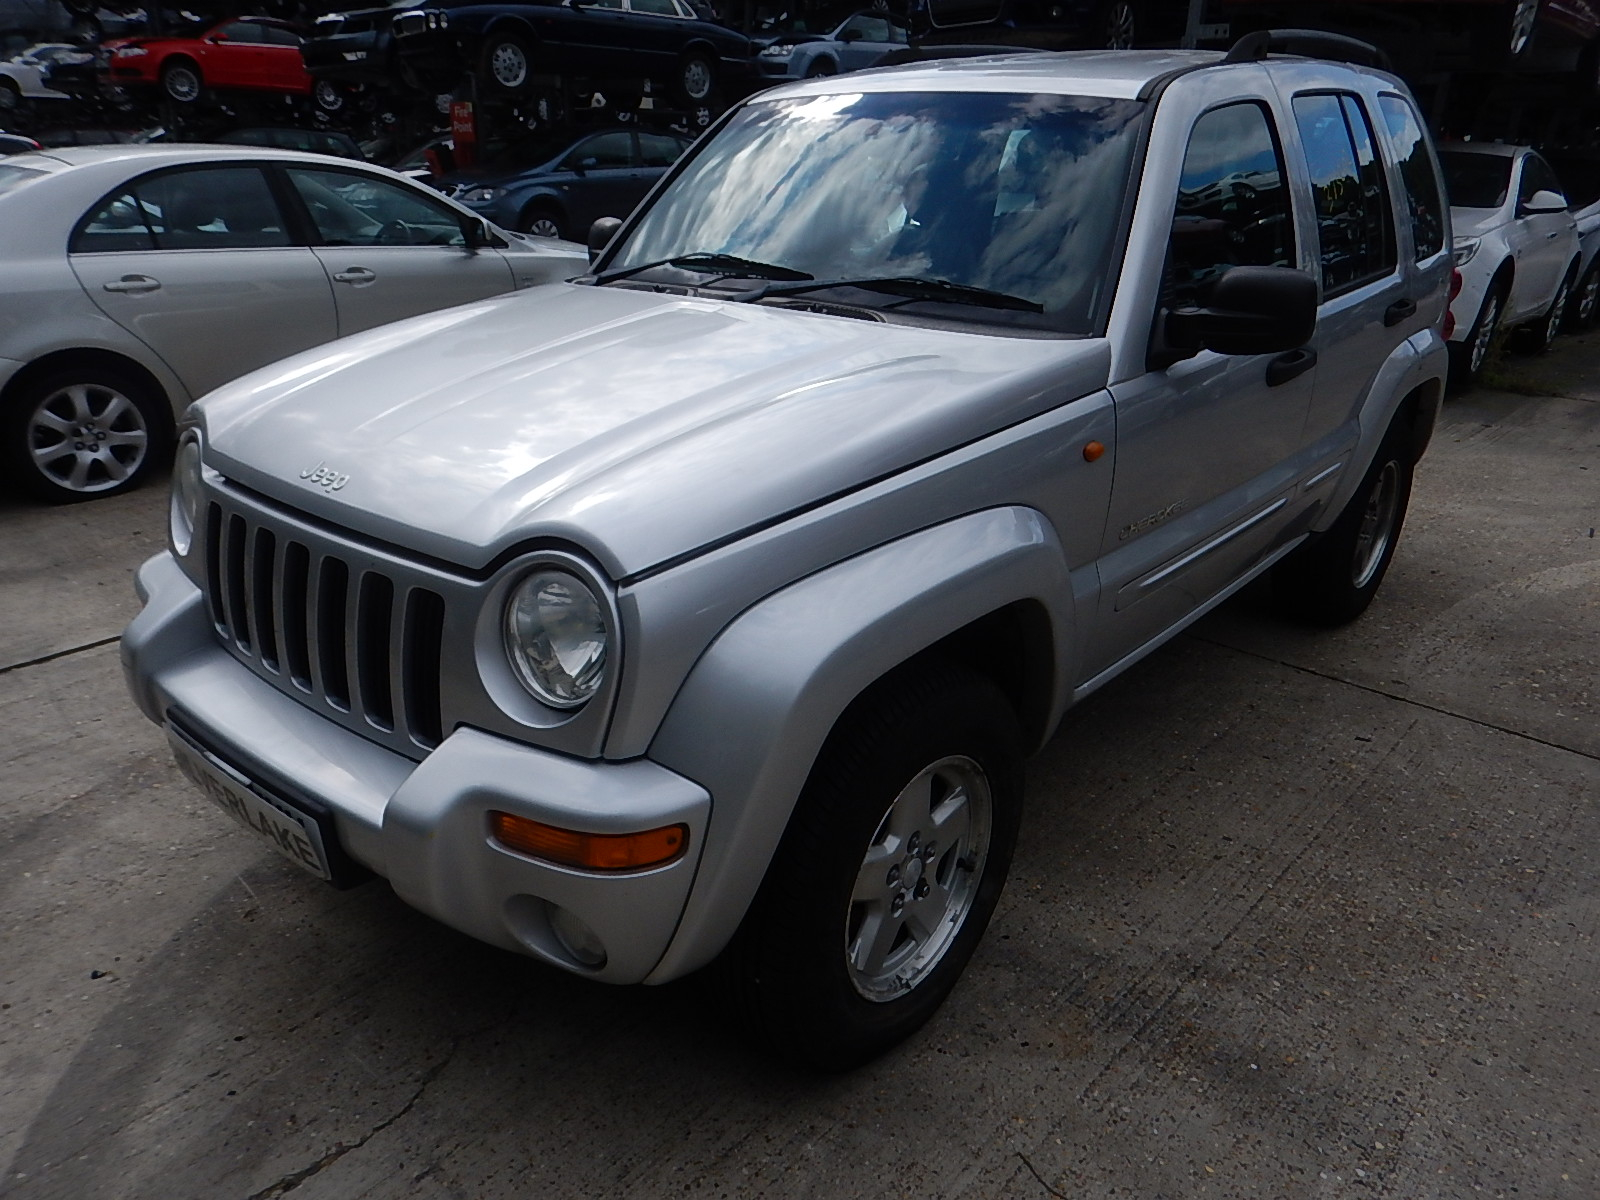 jeep cherokee 2001 to 2004 limited crd 5 door 4x4 scrap salvage car for sale auction. Black Bedroom Furniture Sets. Home Design Ideas